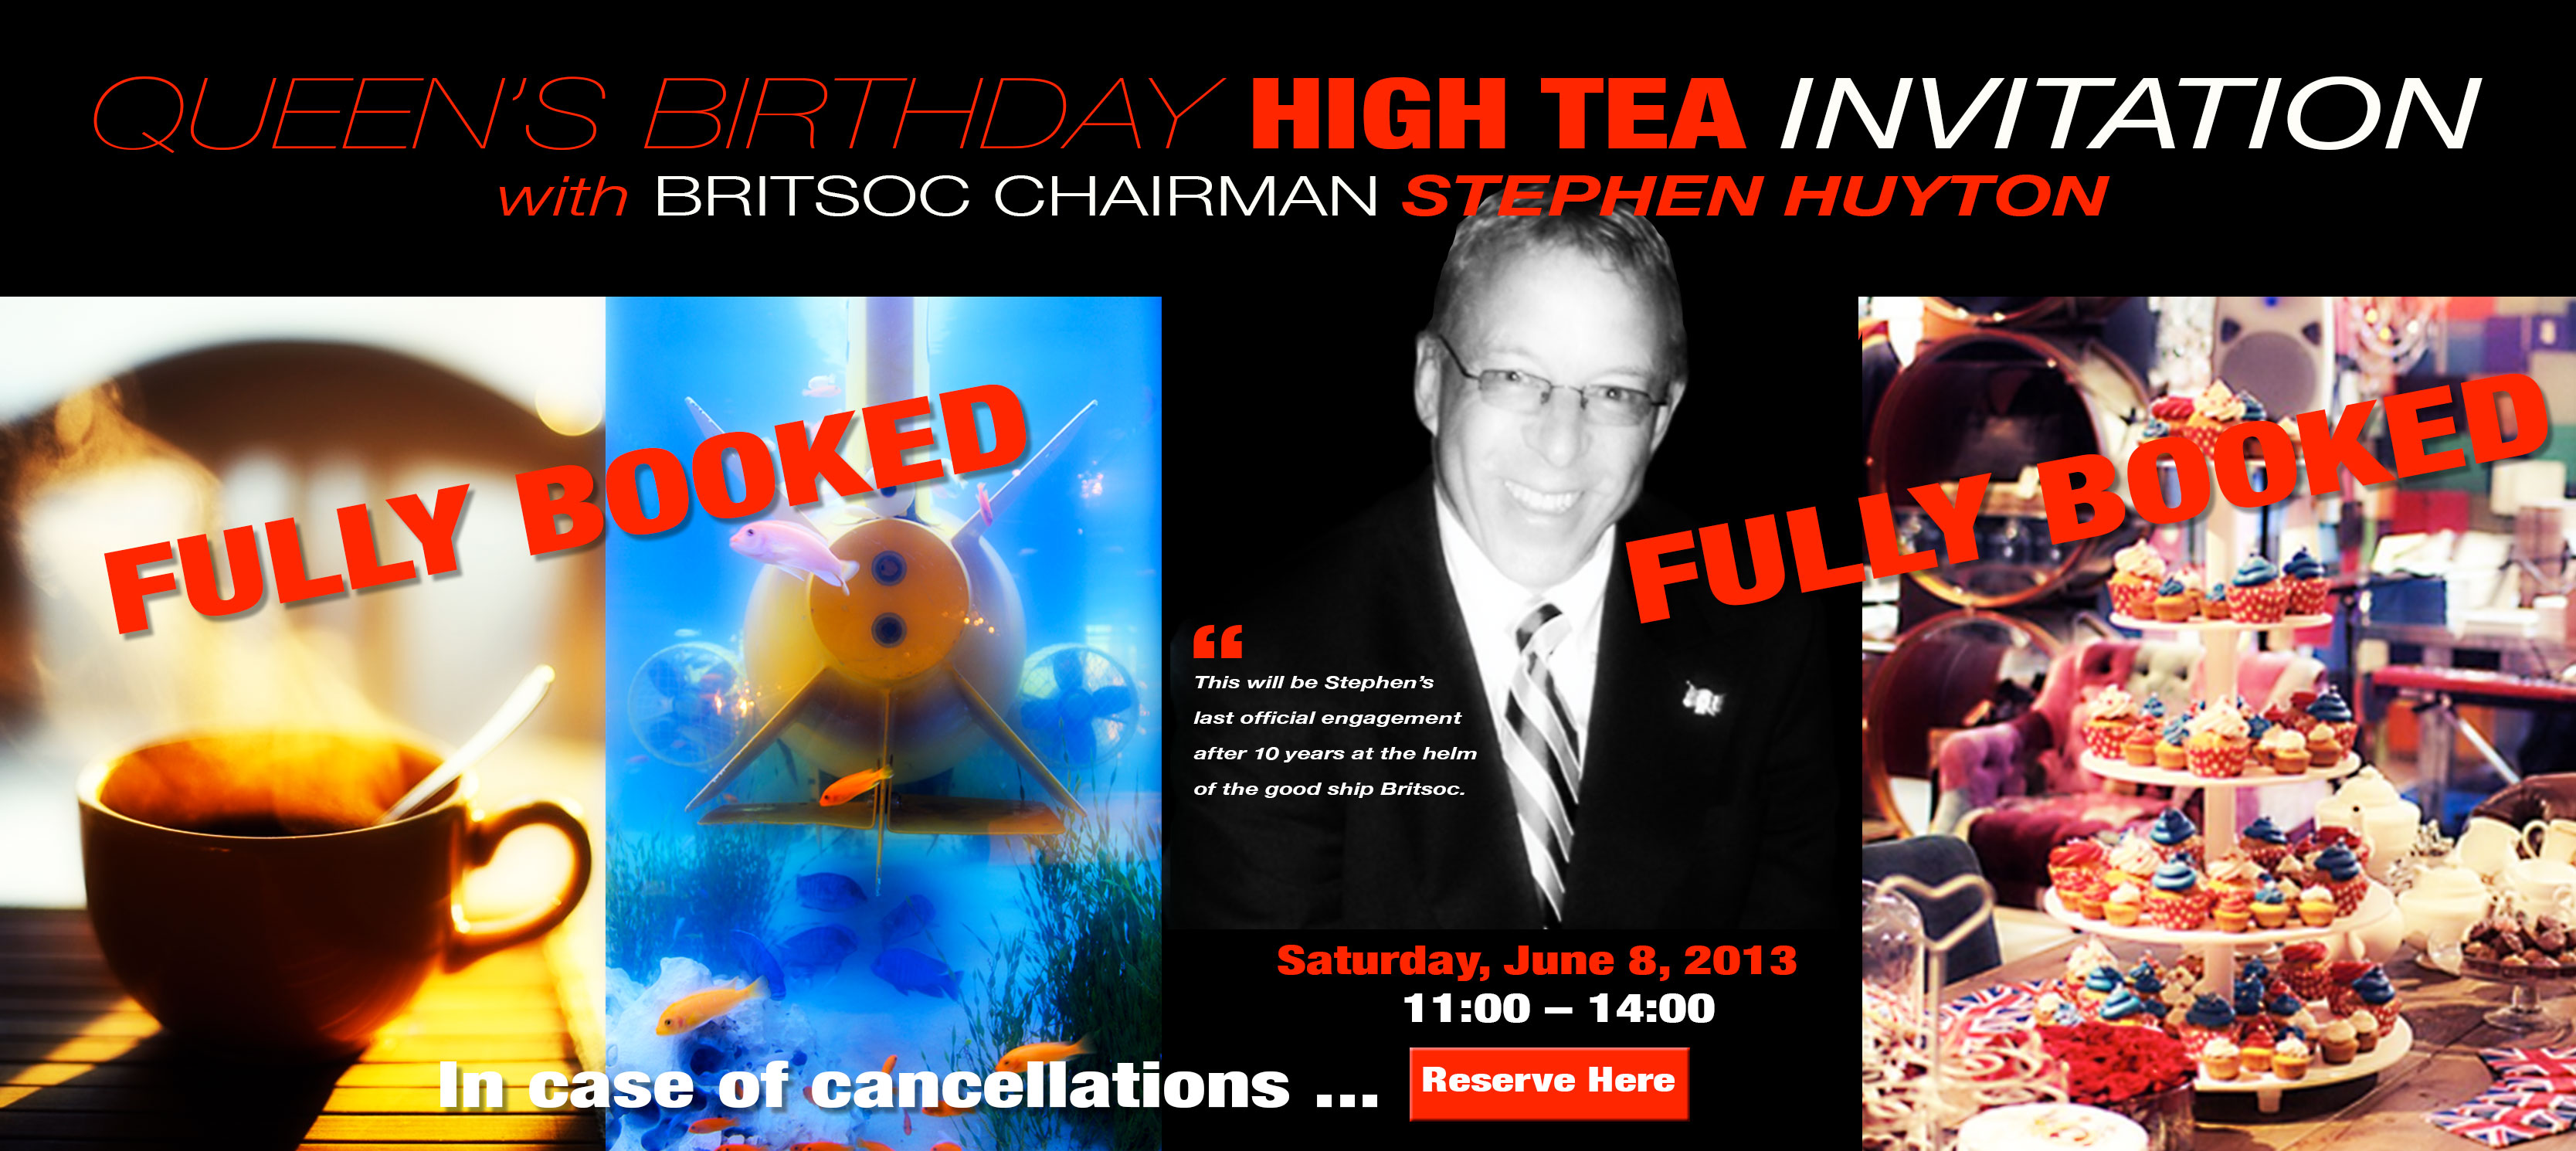 Britsoc-Tea-Invitation_fully-booked